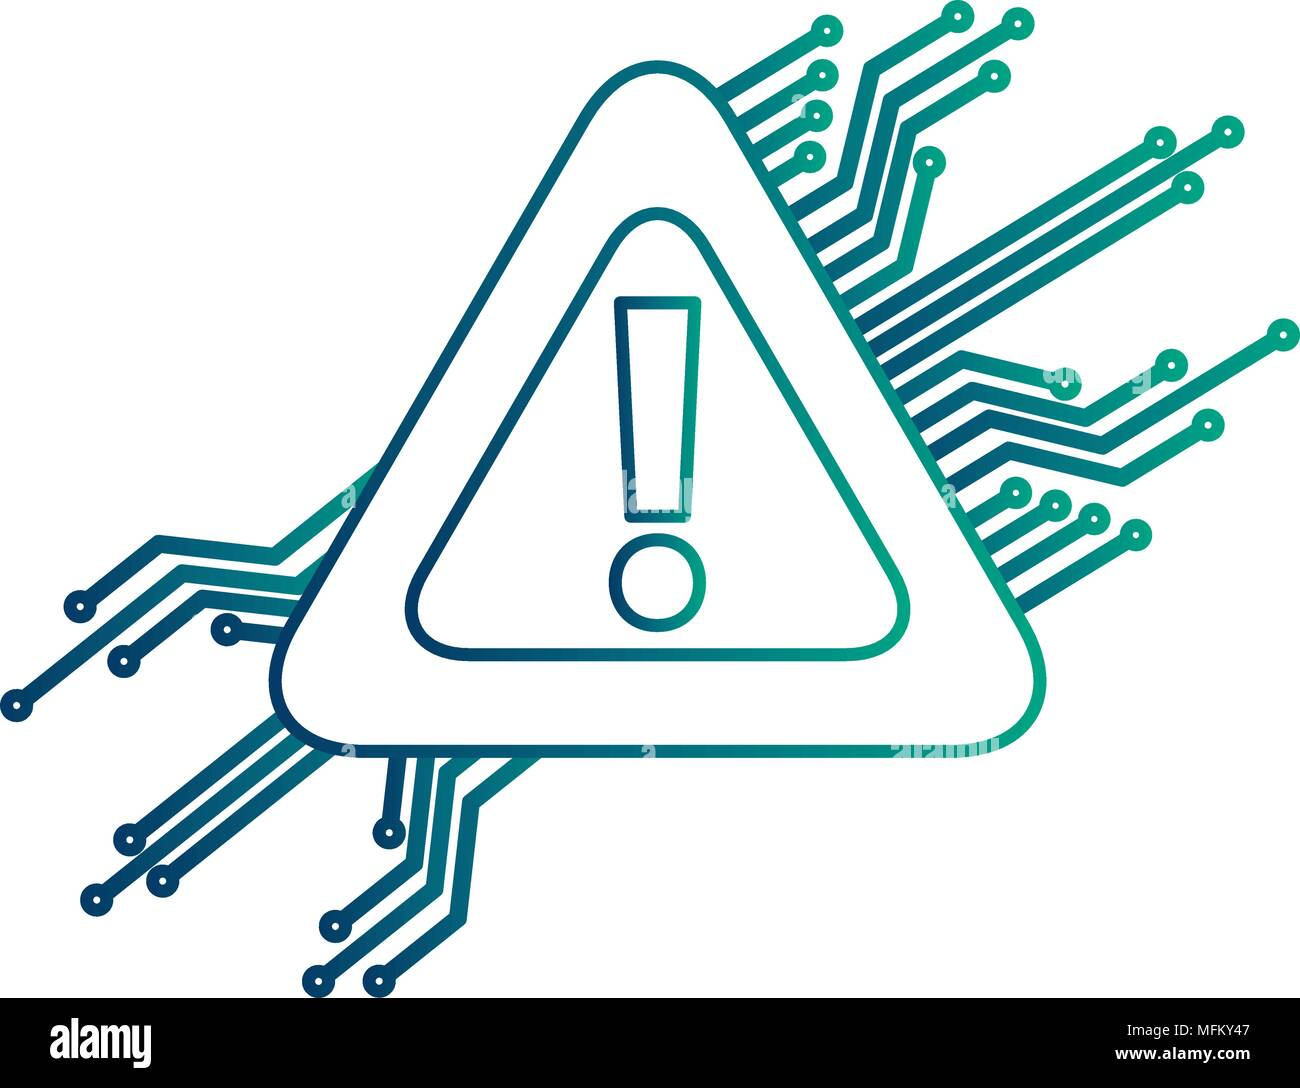 warning alert problem error circuit technology - Stock Image